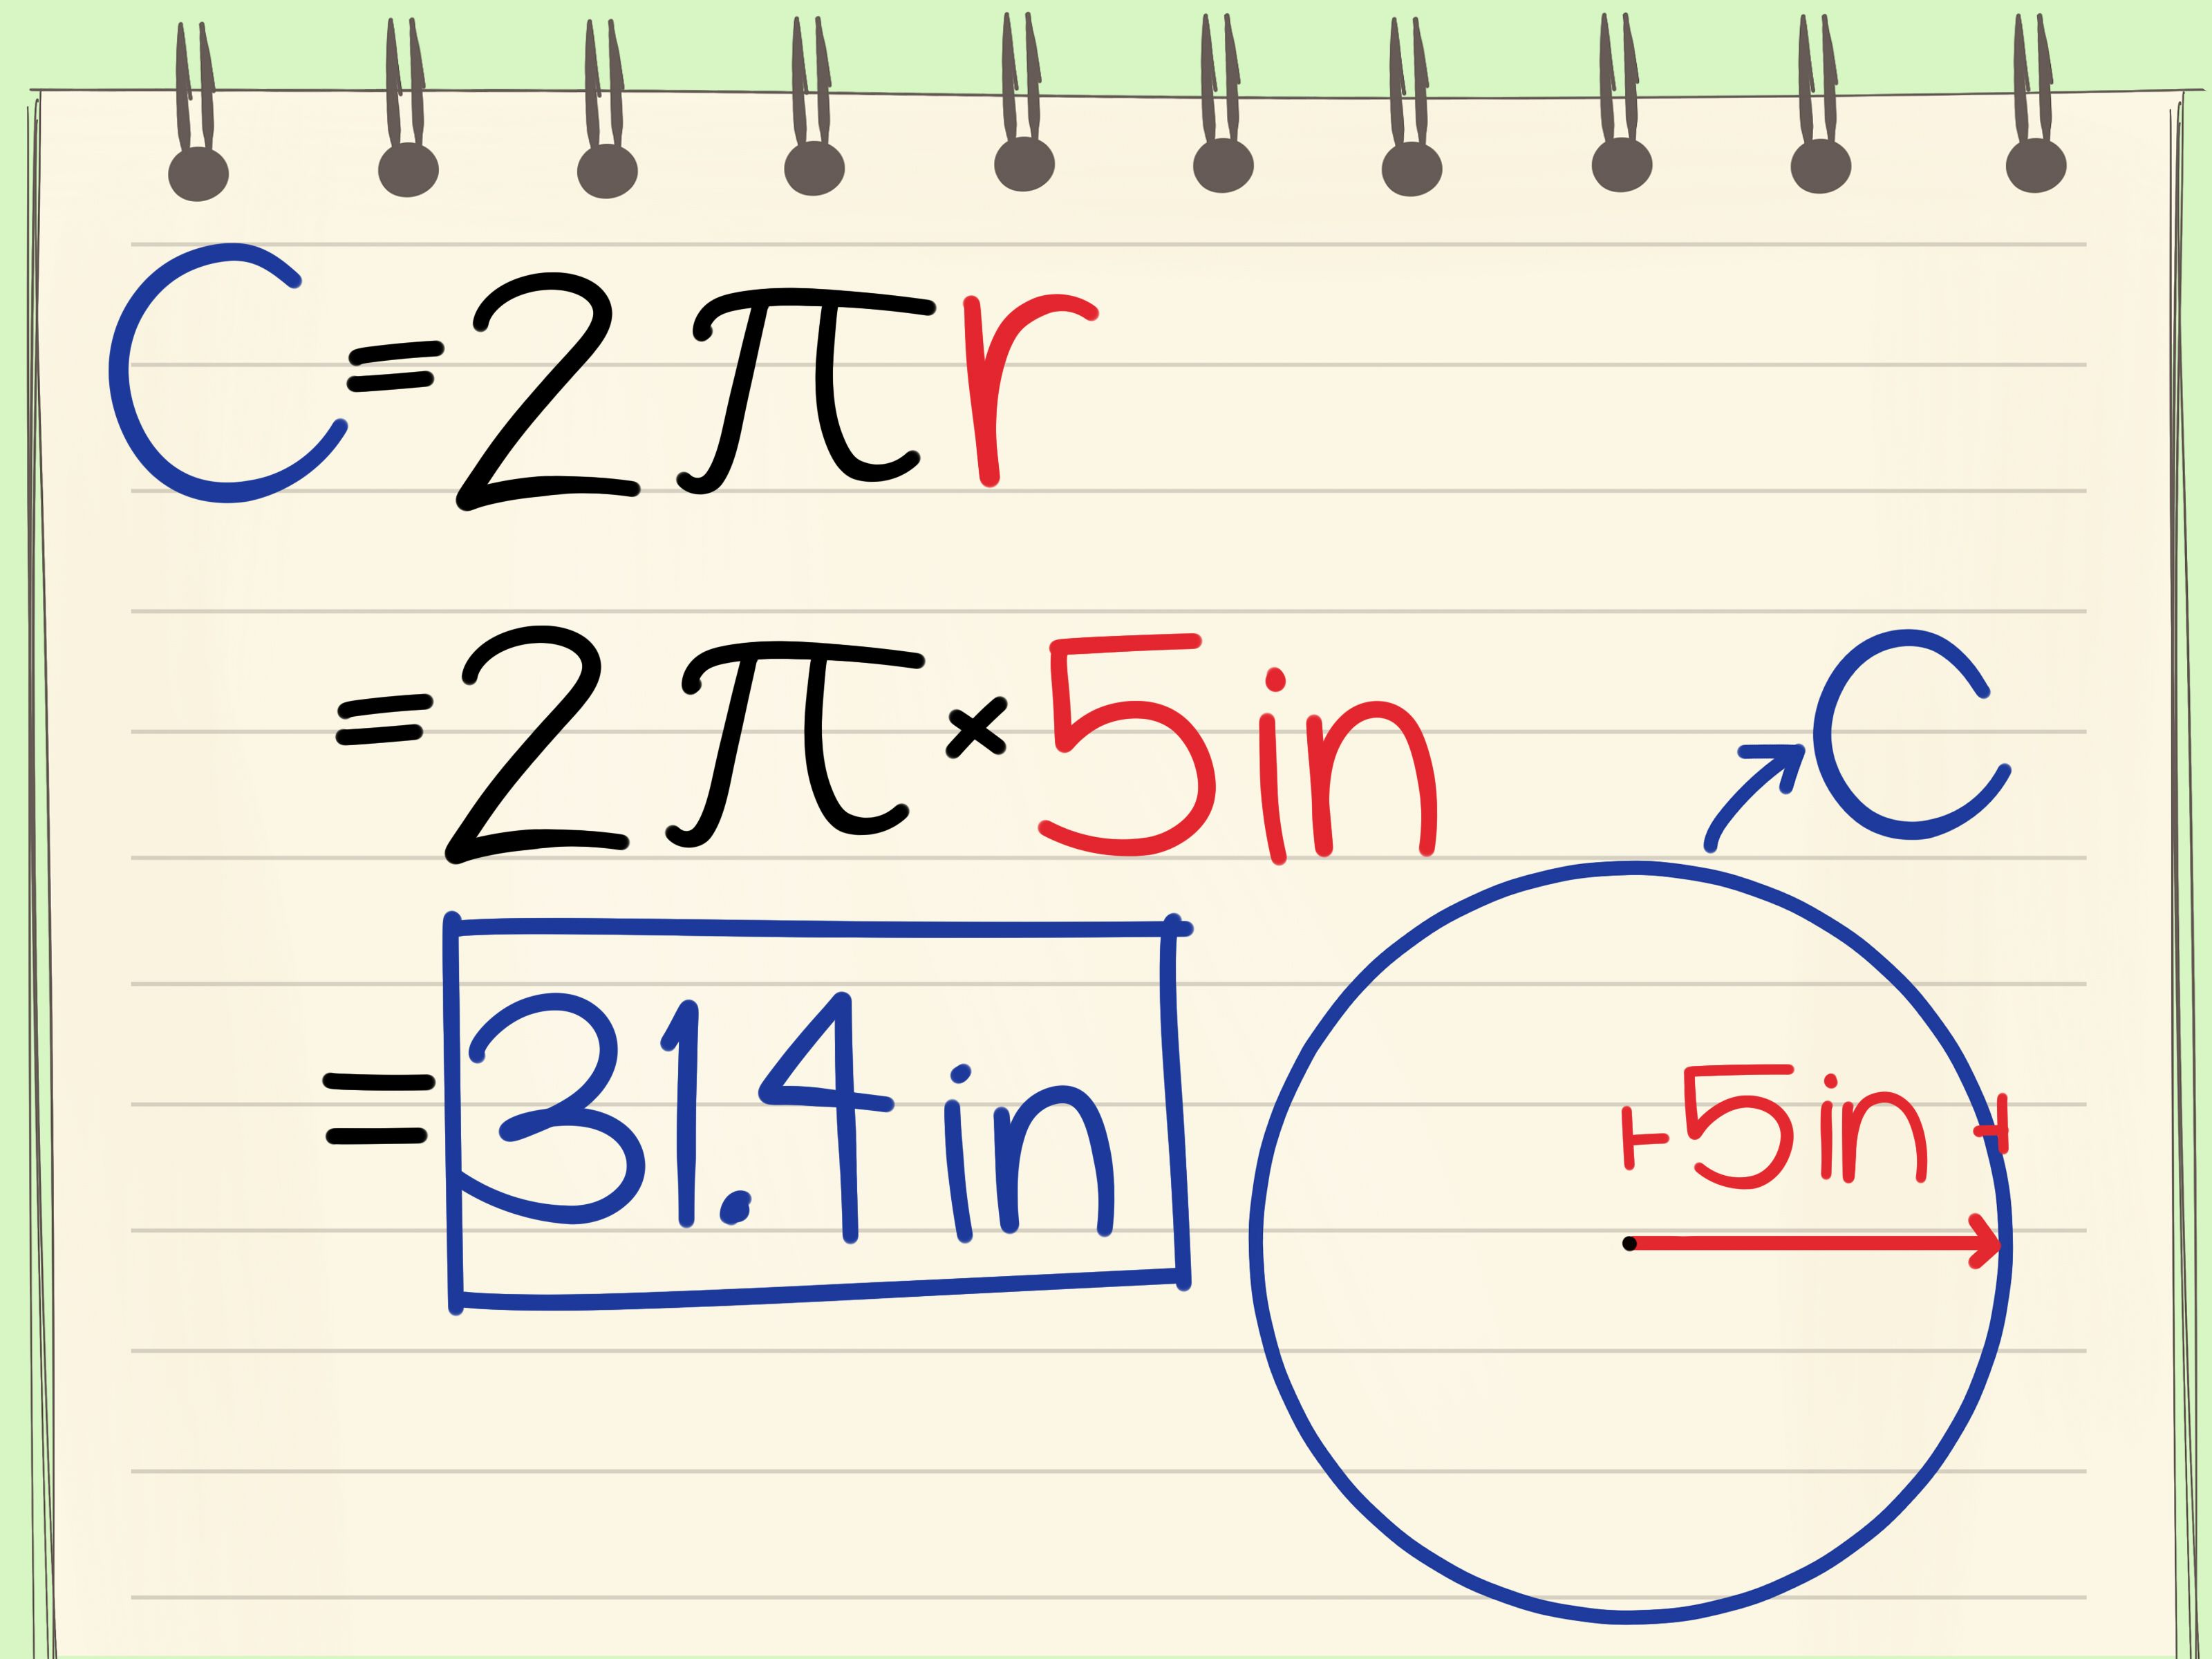 How To Calculate The Circumference Of A Circle Via